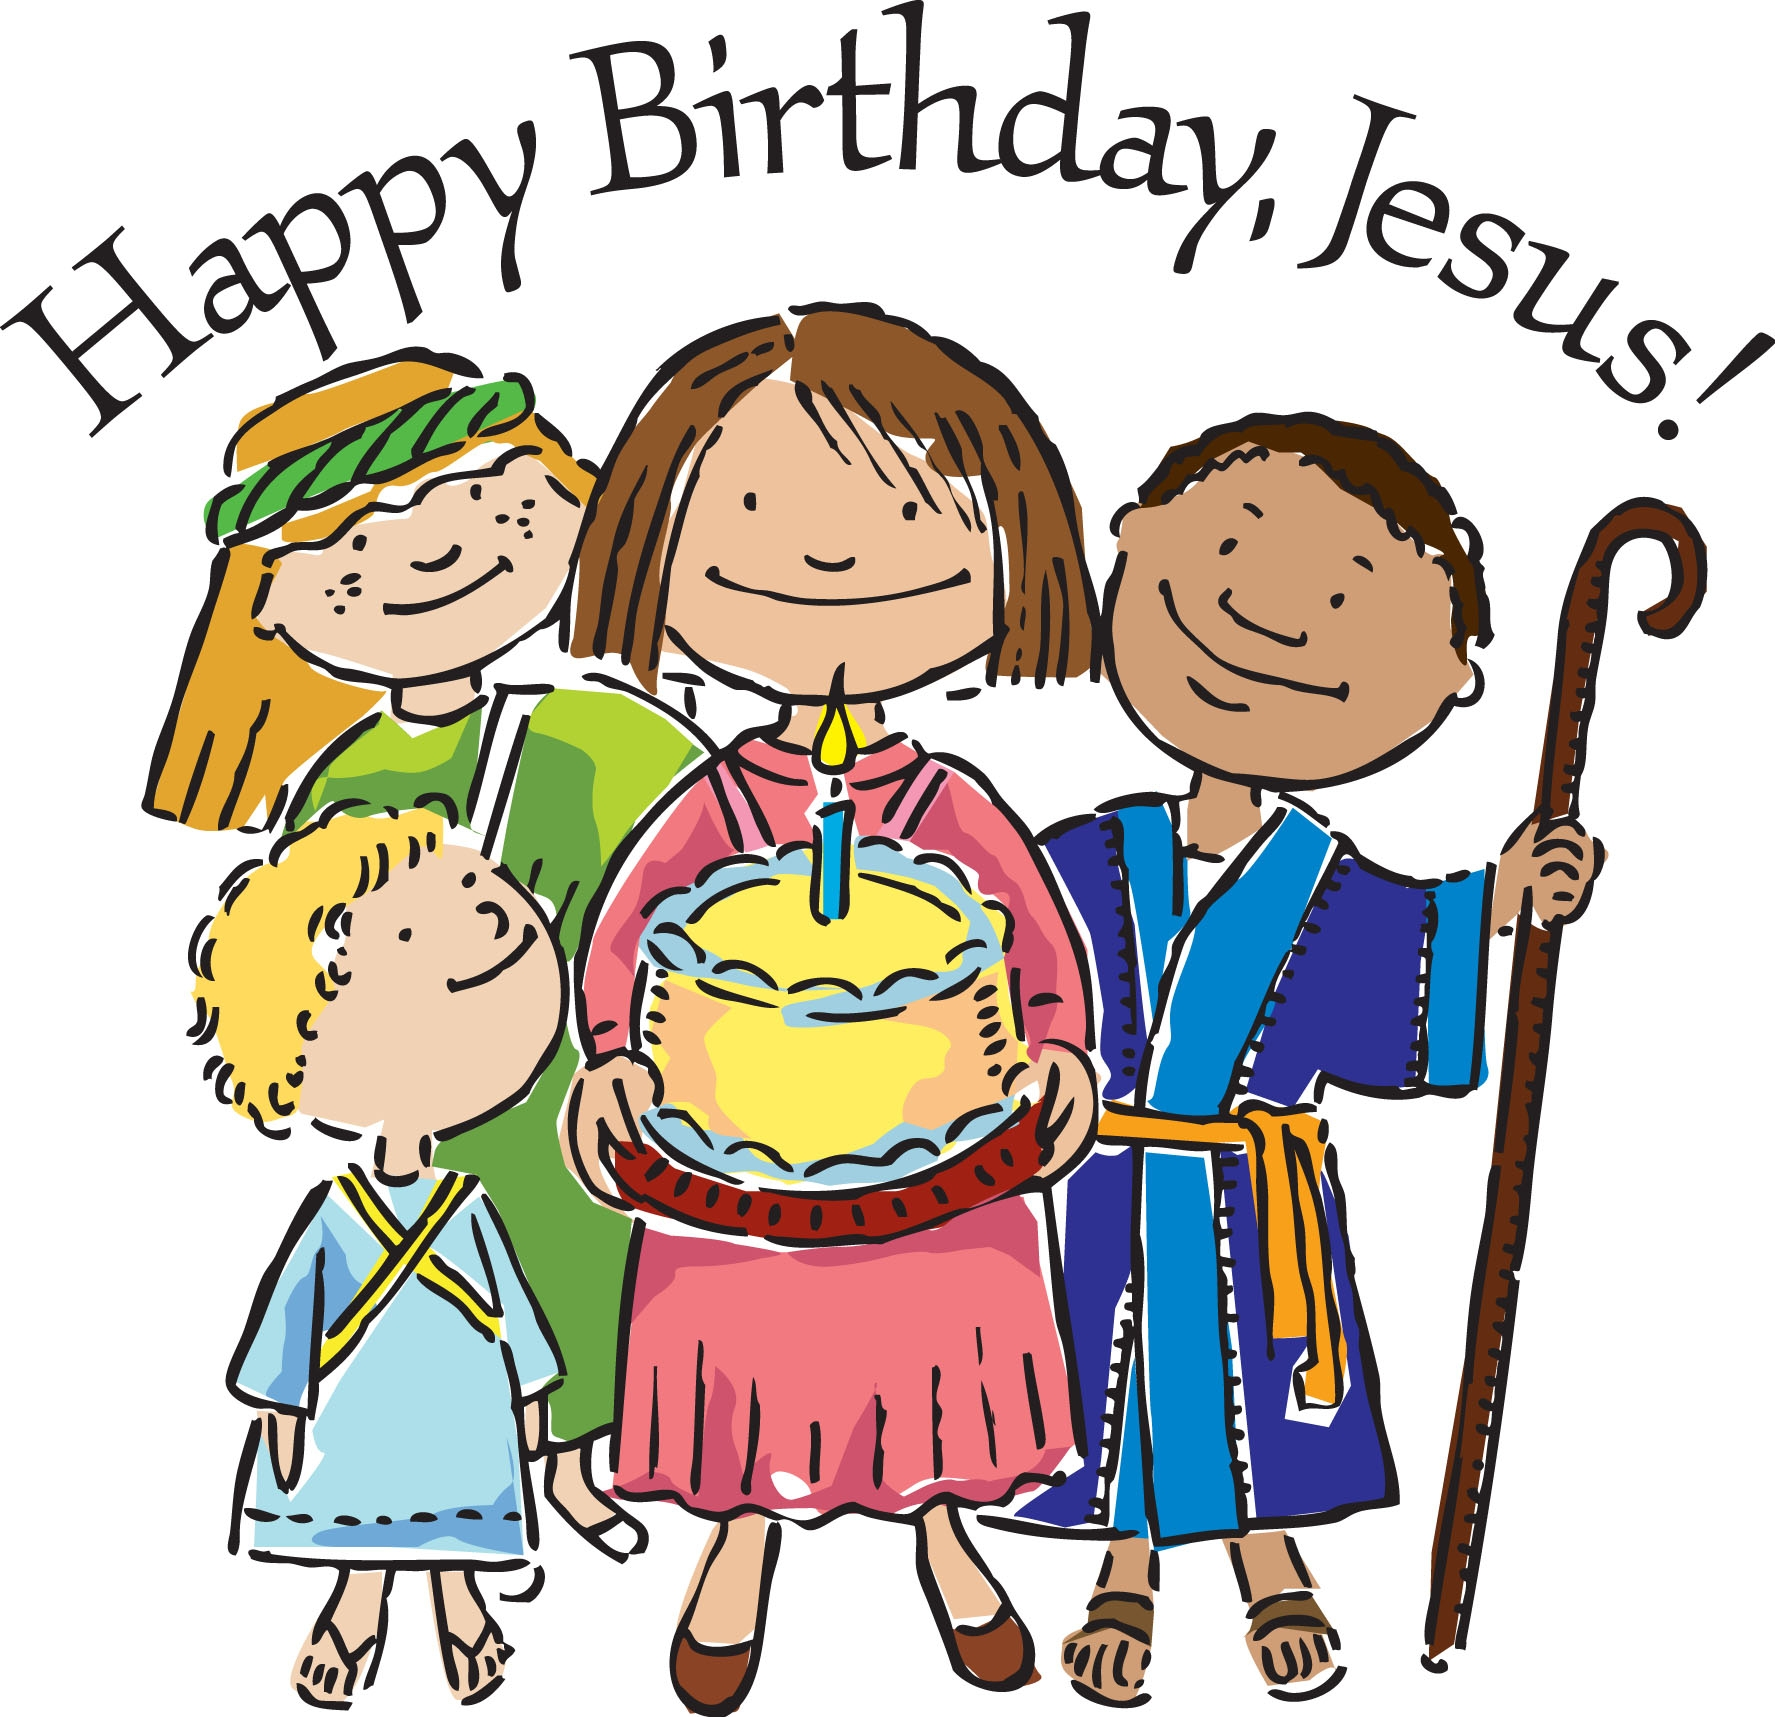 Happy Birthday Jesus Party Church Of The Good Shepherd Tyrone Pa